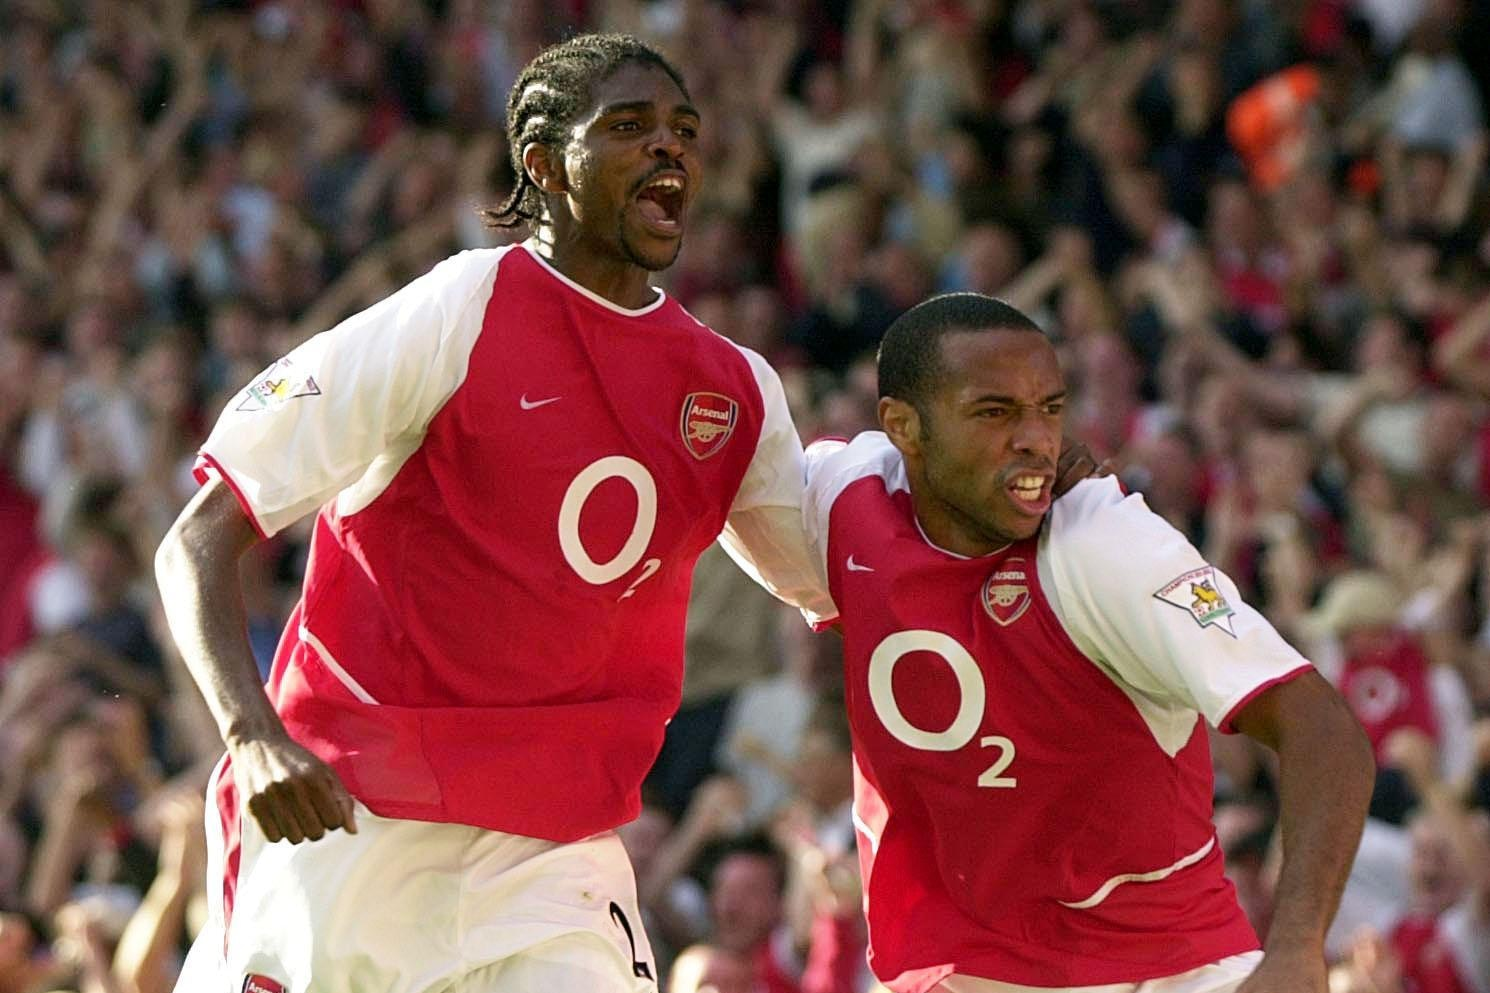 Kanu and Thierry Henry combined well at Arsenal from 1999 to 2005